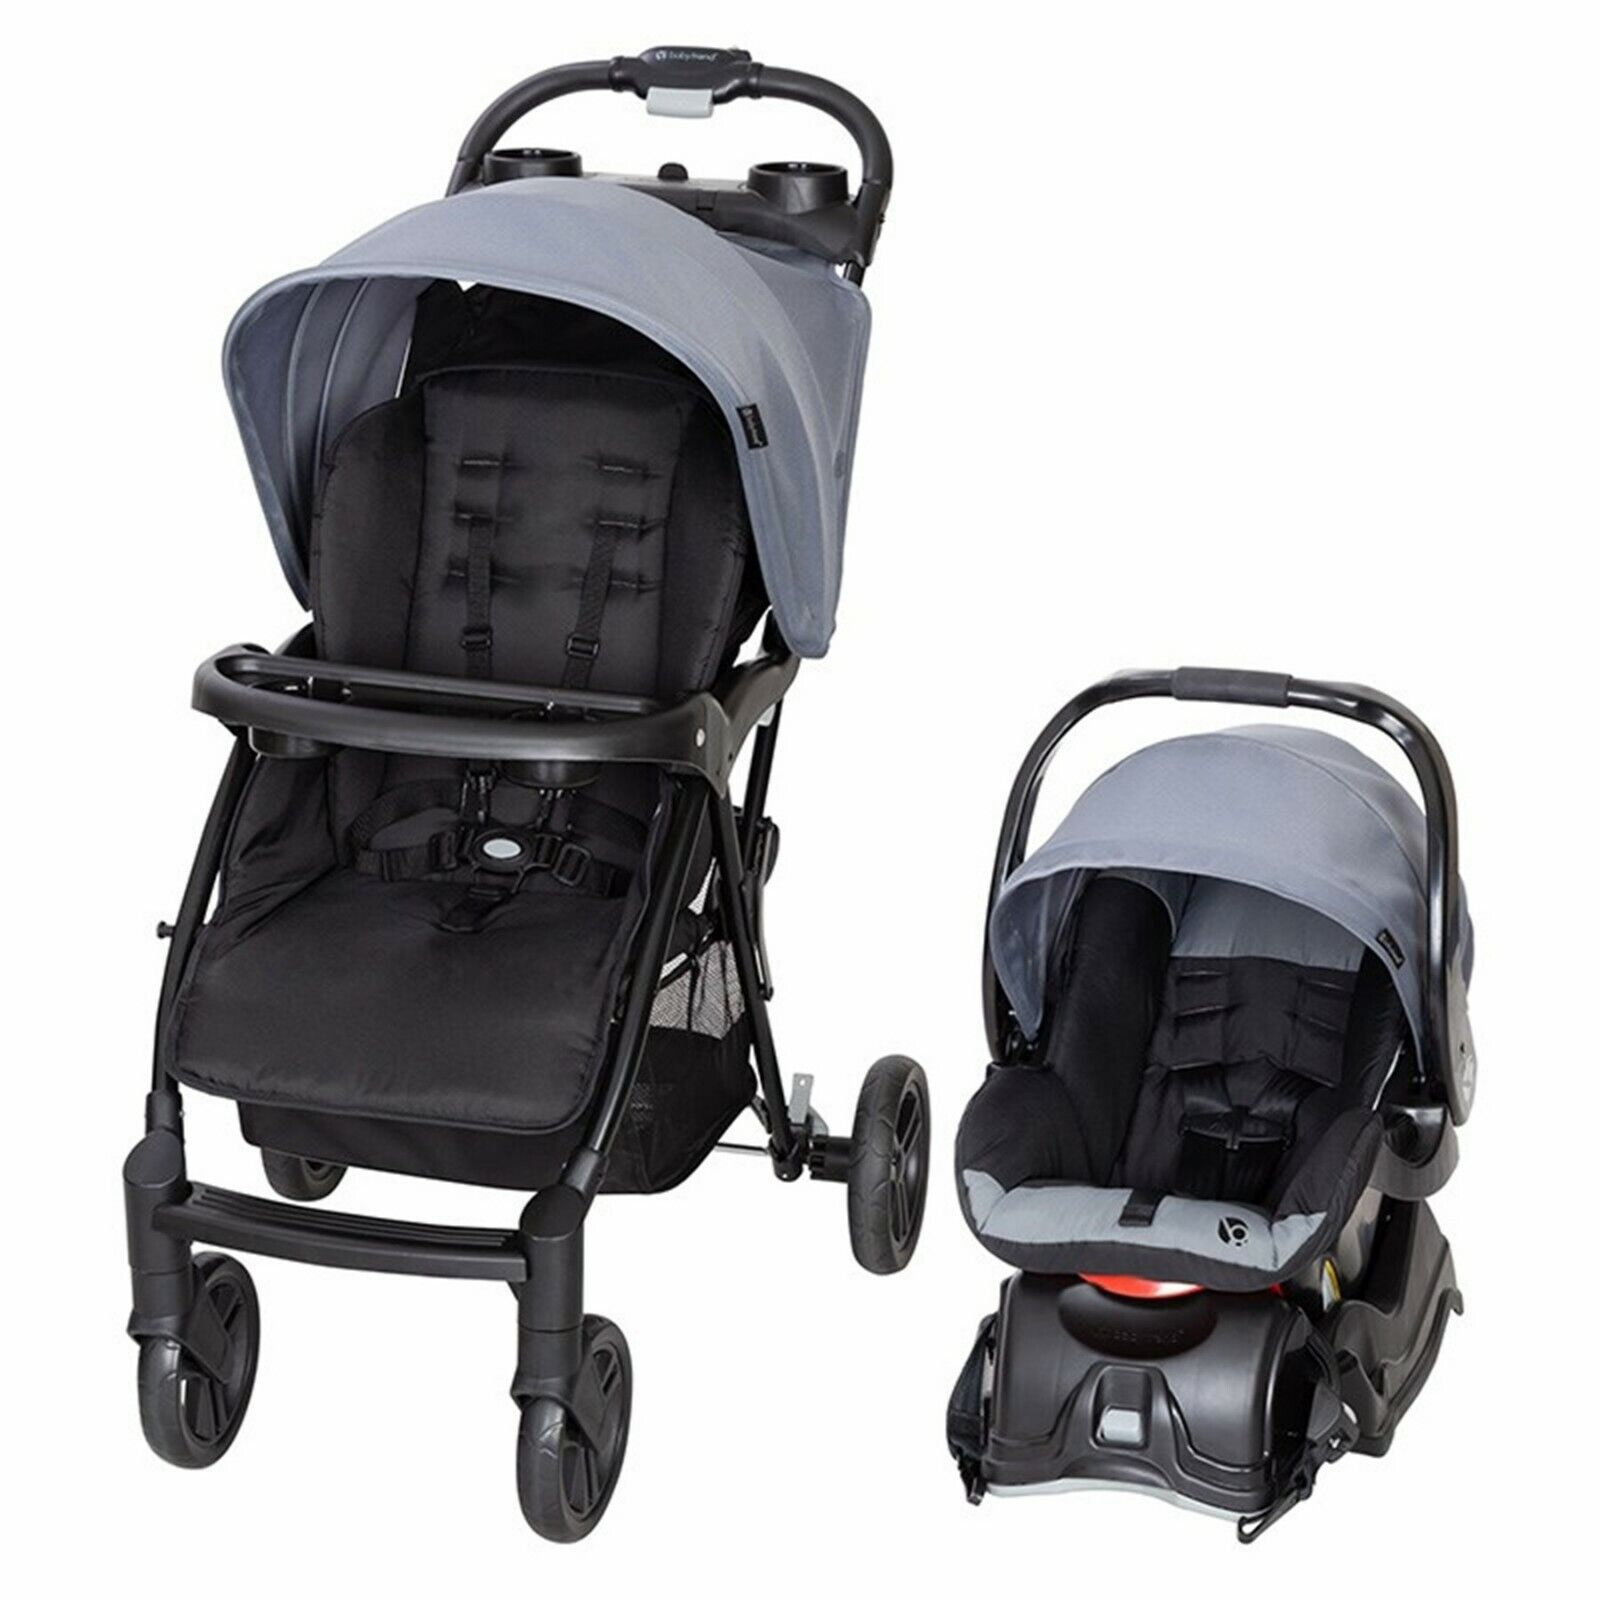 Baby Stroller Car Seat Combo Newborn Infant With XL Storage